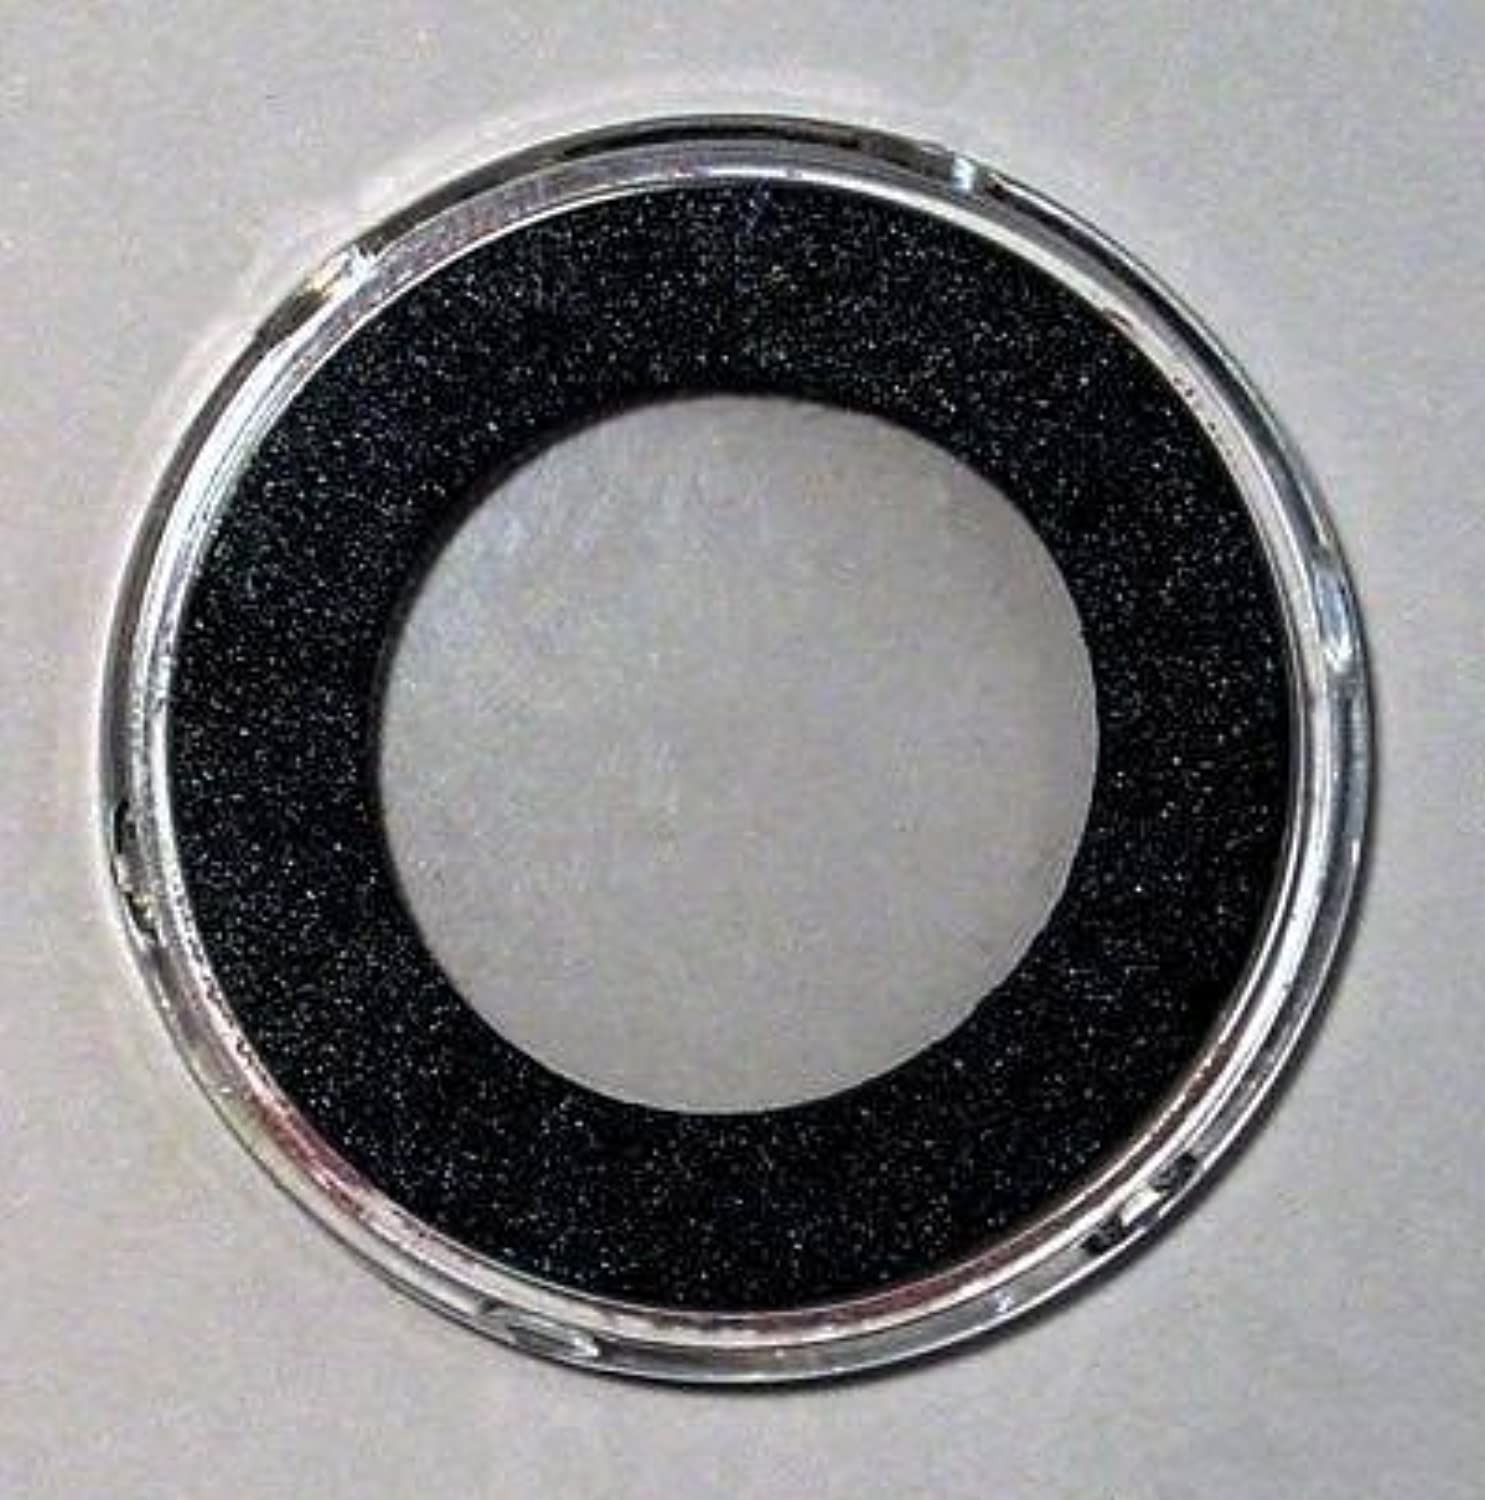 25 AirTite H Black Ring Coin Holders for 30mm Coins by AirTite